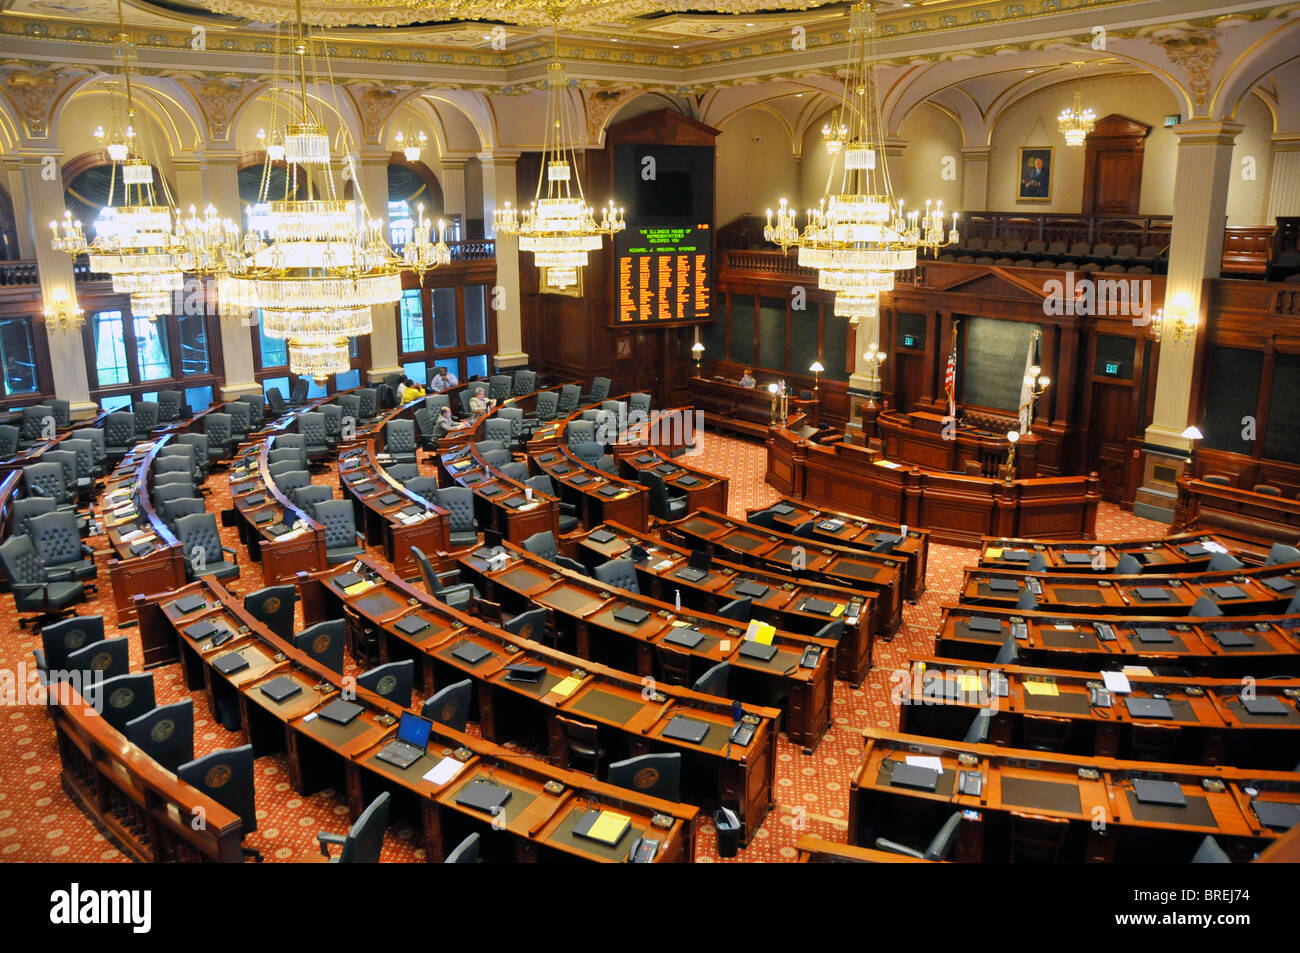 house of reps chamber room design in your home u2022 rh travelout co uk Ben Ray Lujan Ben Ray Lujan